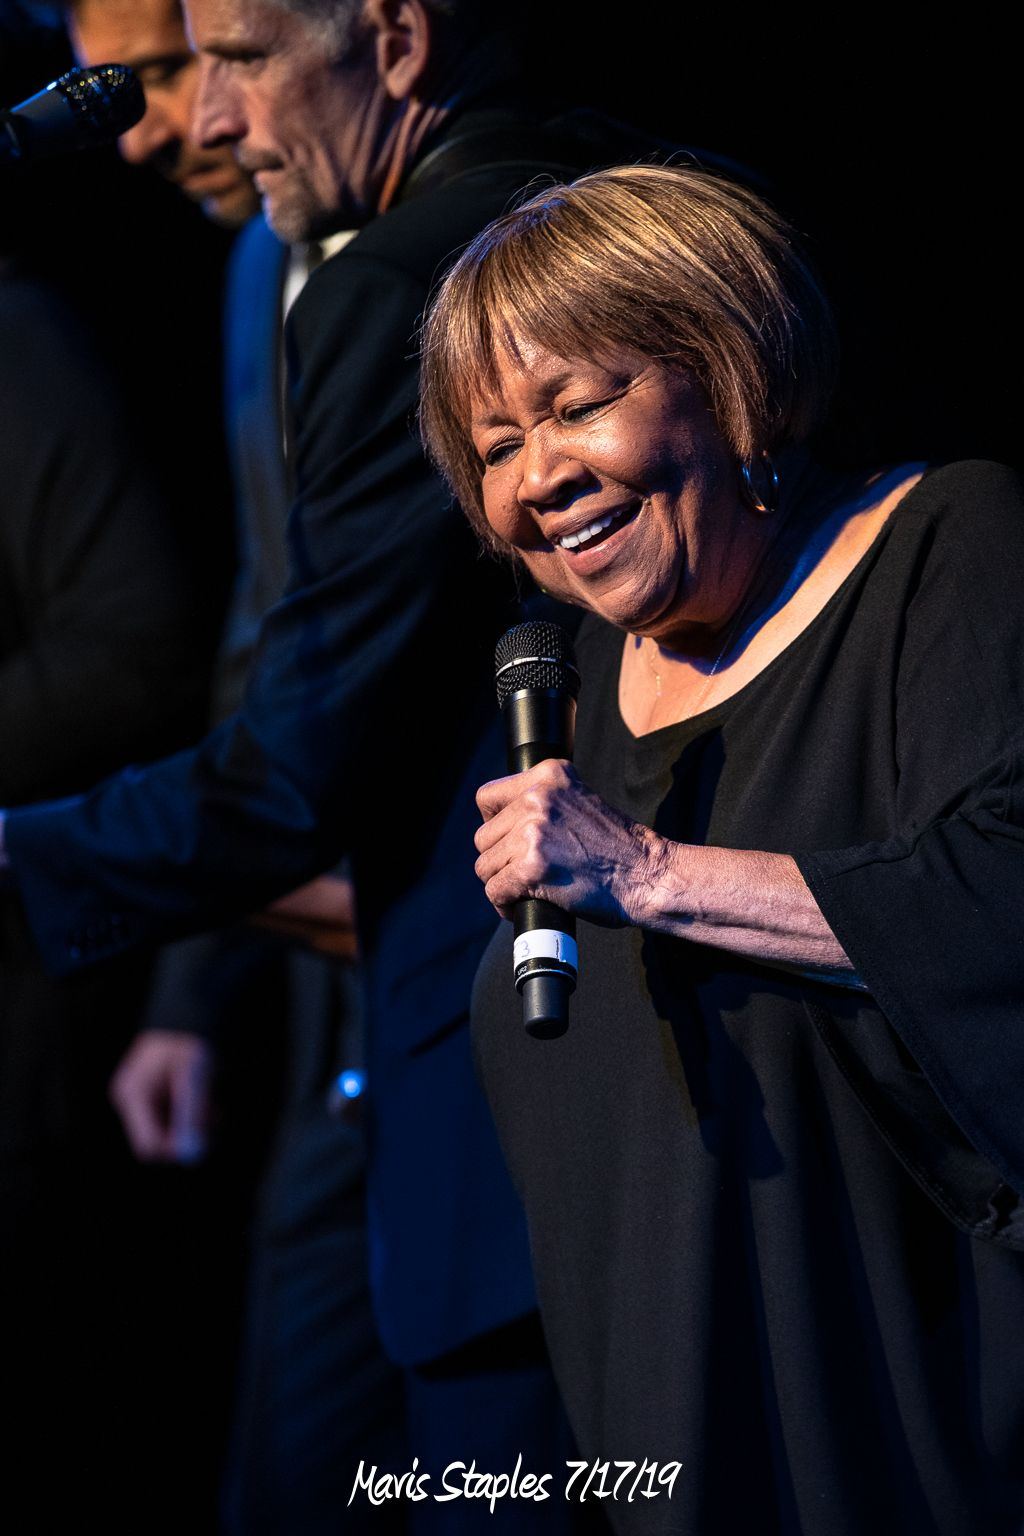 Mavis Staples 7/17/19